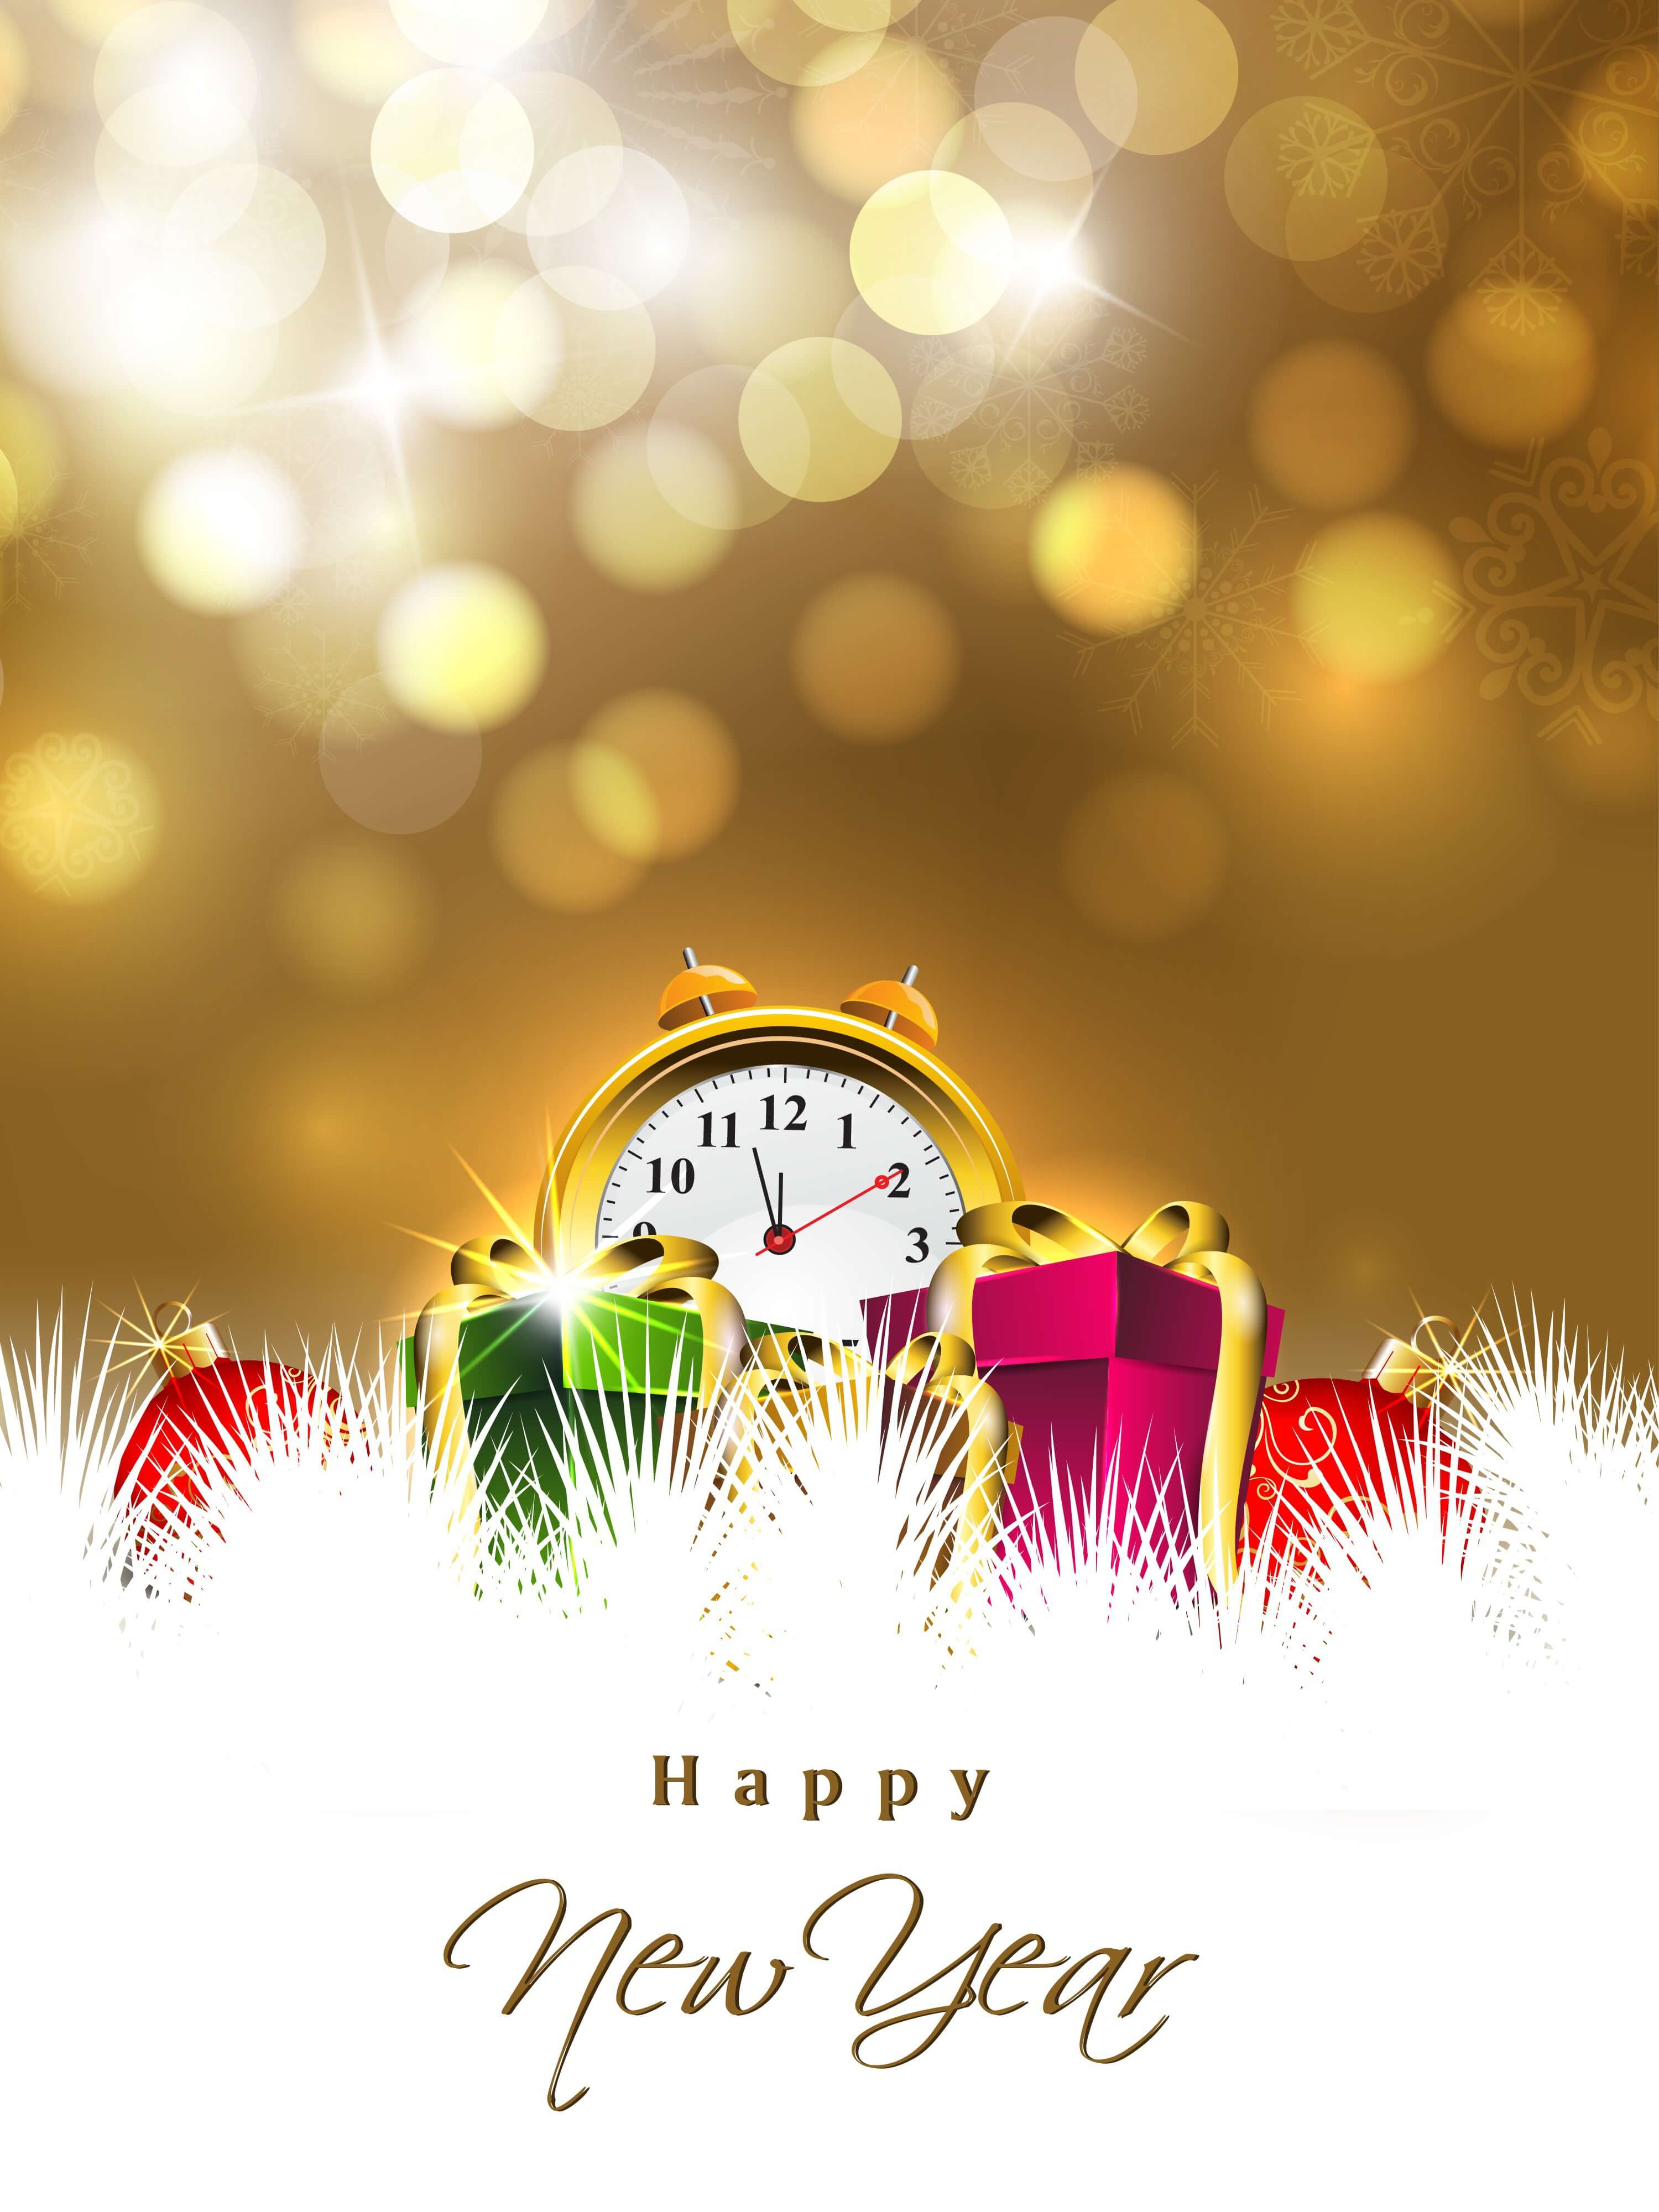 Gift Card For Happy New Year Celebrationfyjpy2 Women Managing